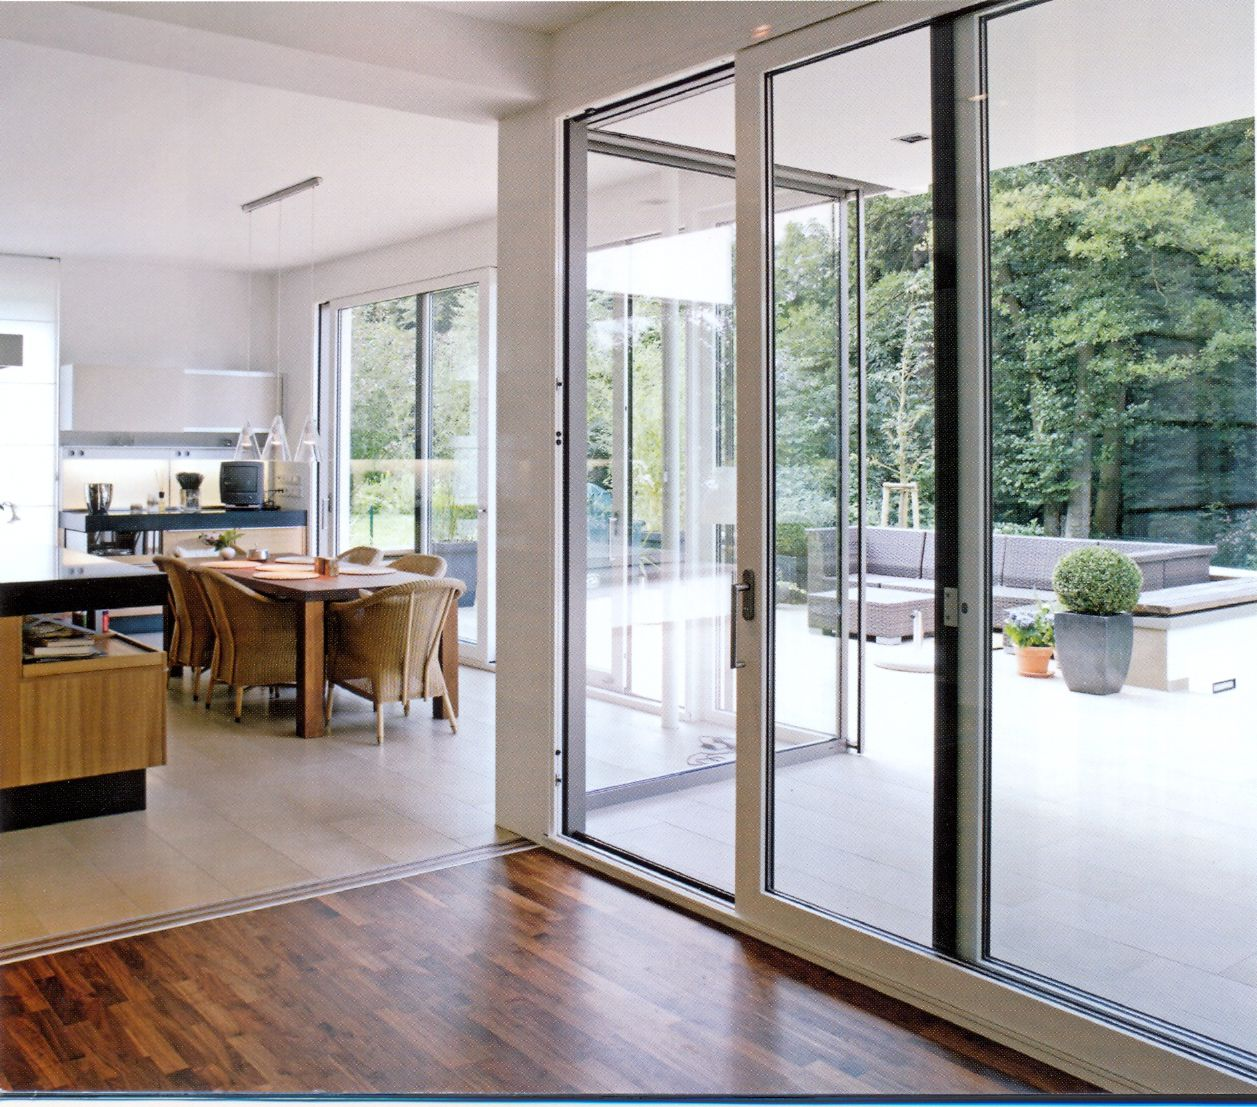 & White patio aluminium sliding door with glass